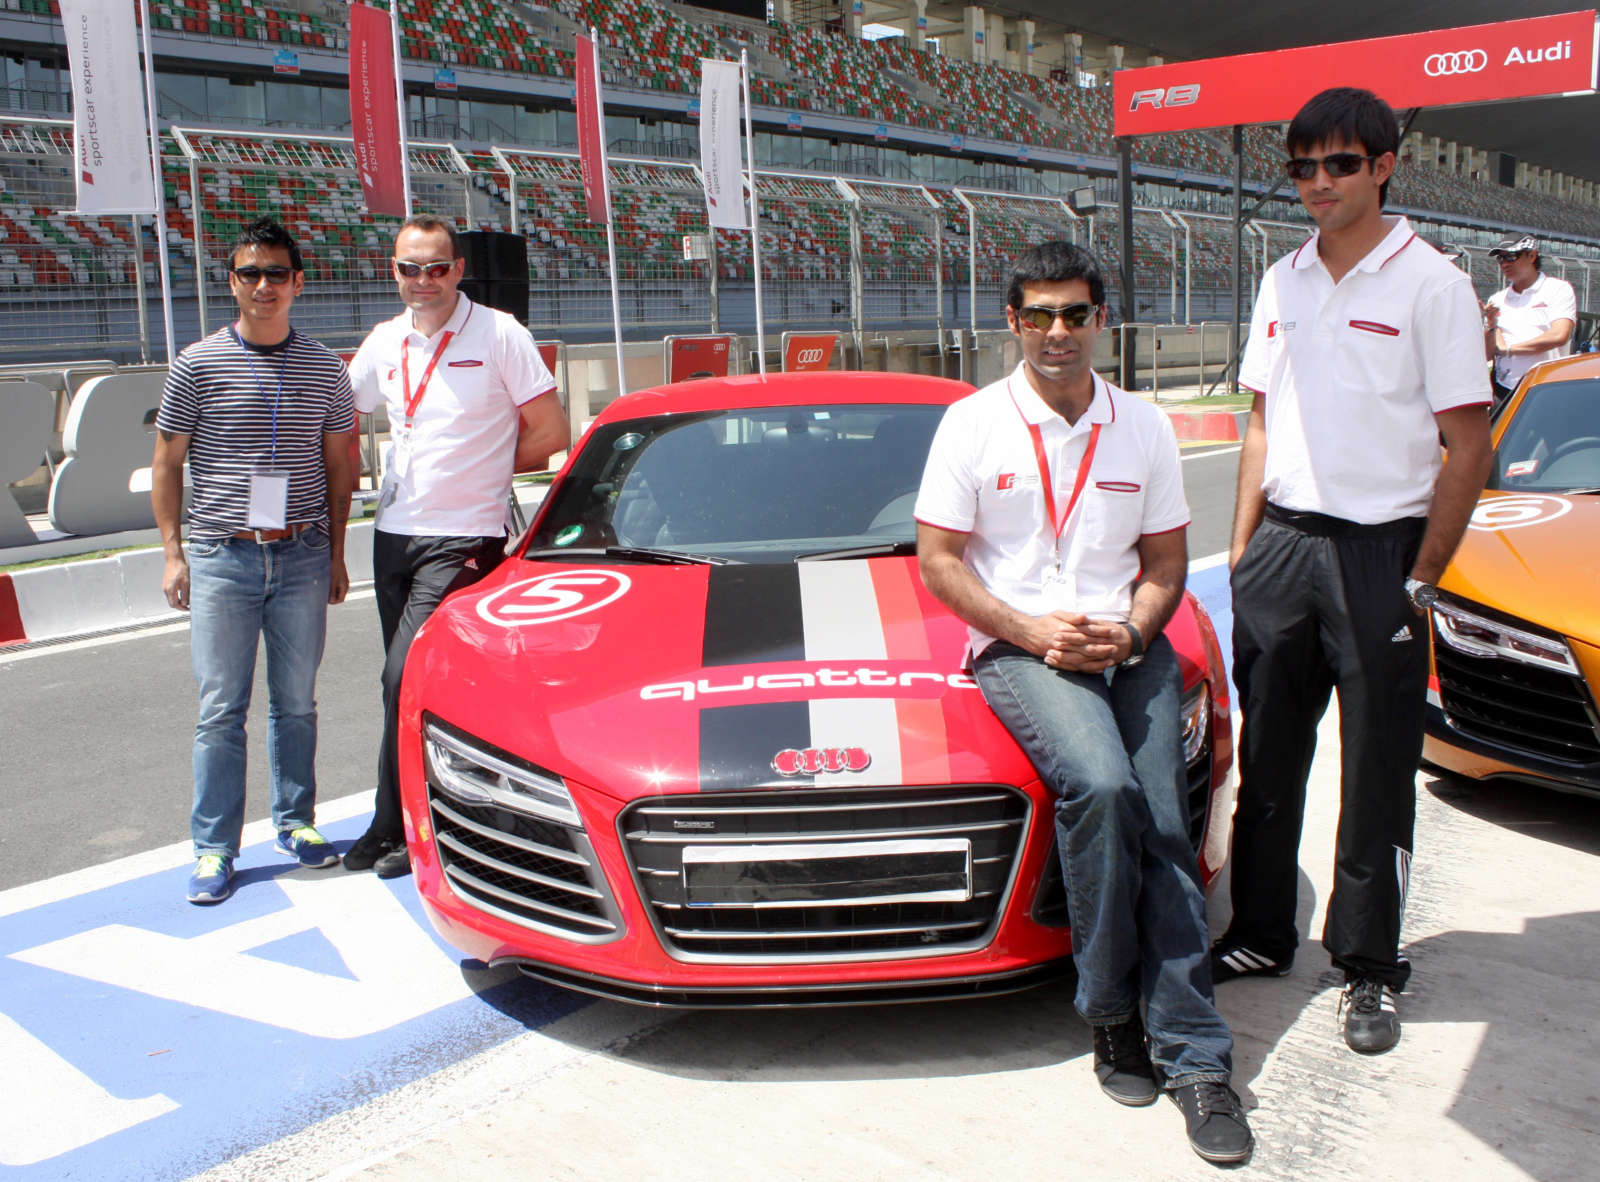 From Left to Right - Indian Football Icon, Baichung Bhutia, Michael Perschke, Head, Audi India, Ace Drivers Karun Chandhok and Aditya Patel at the launch of Audi R8 V10 Plus at BIC-1